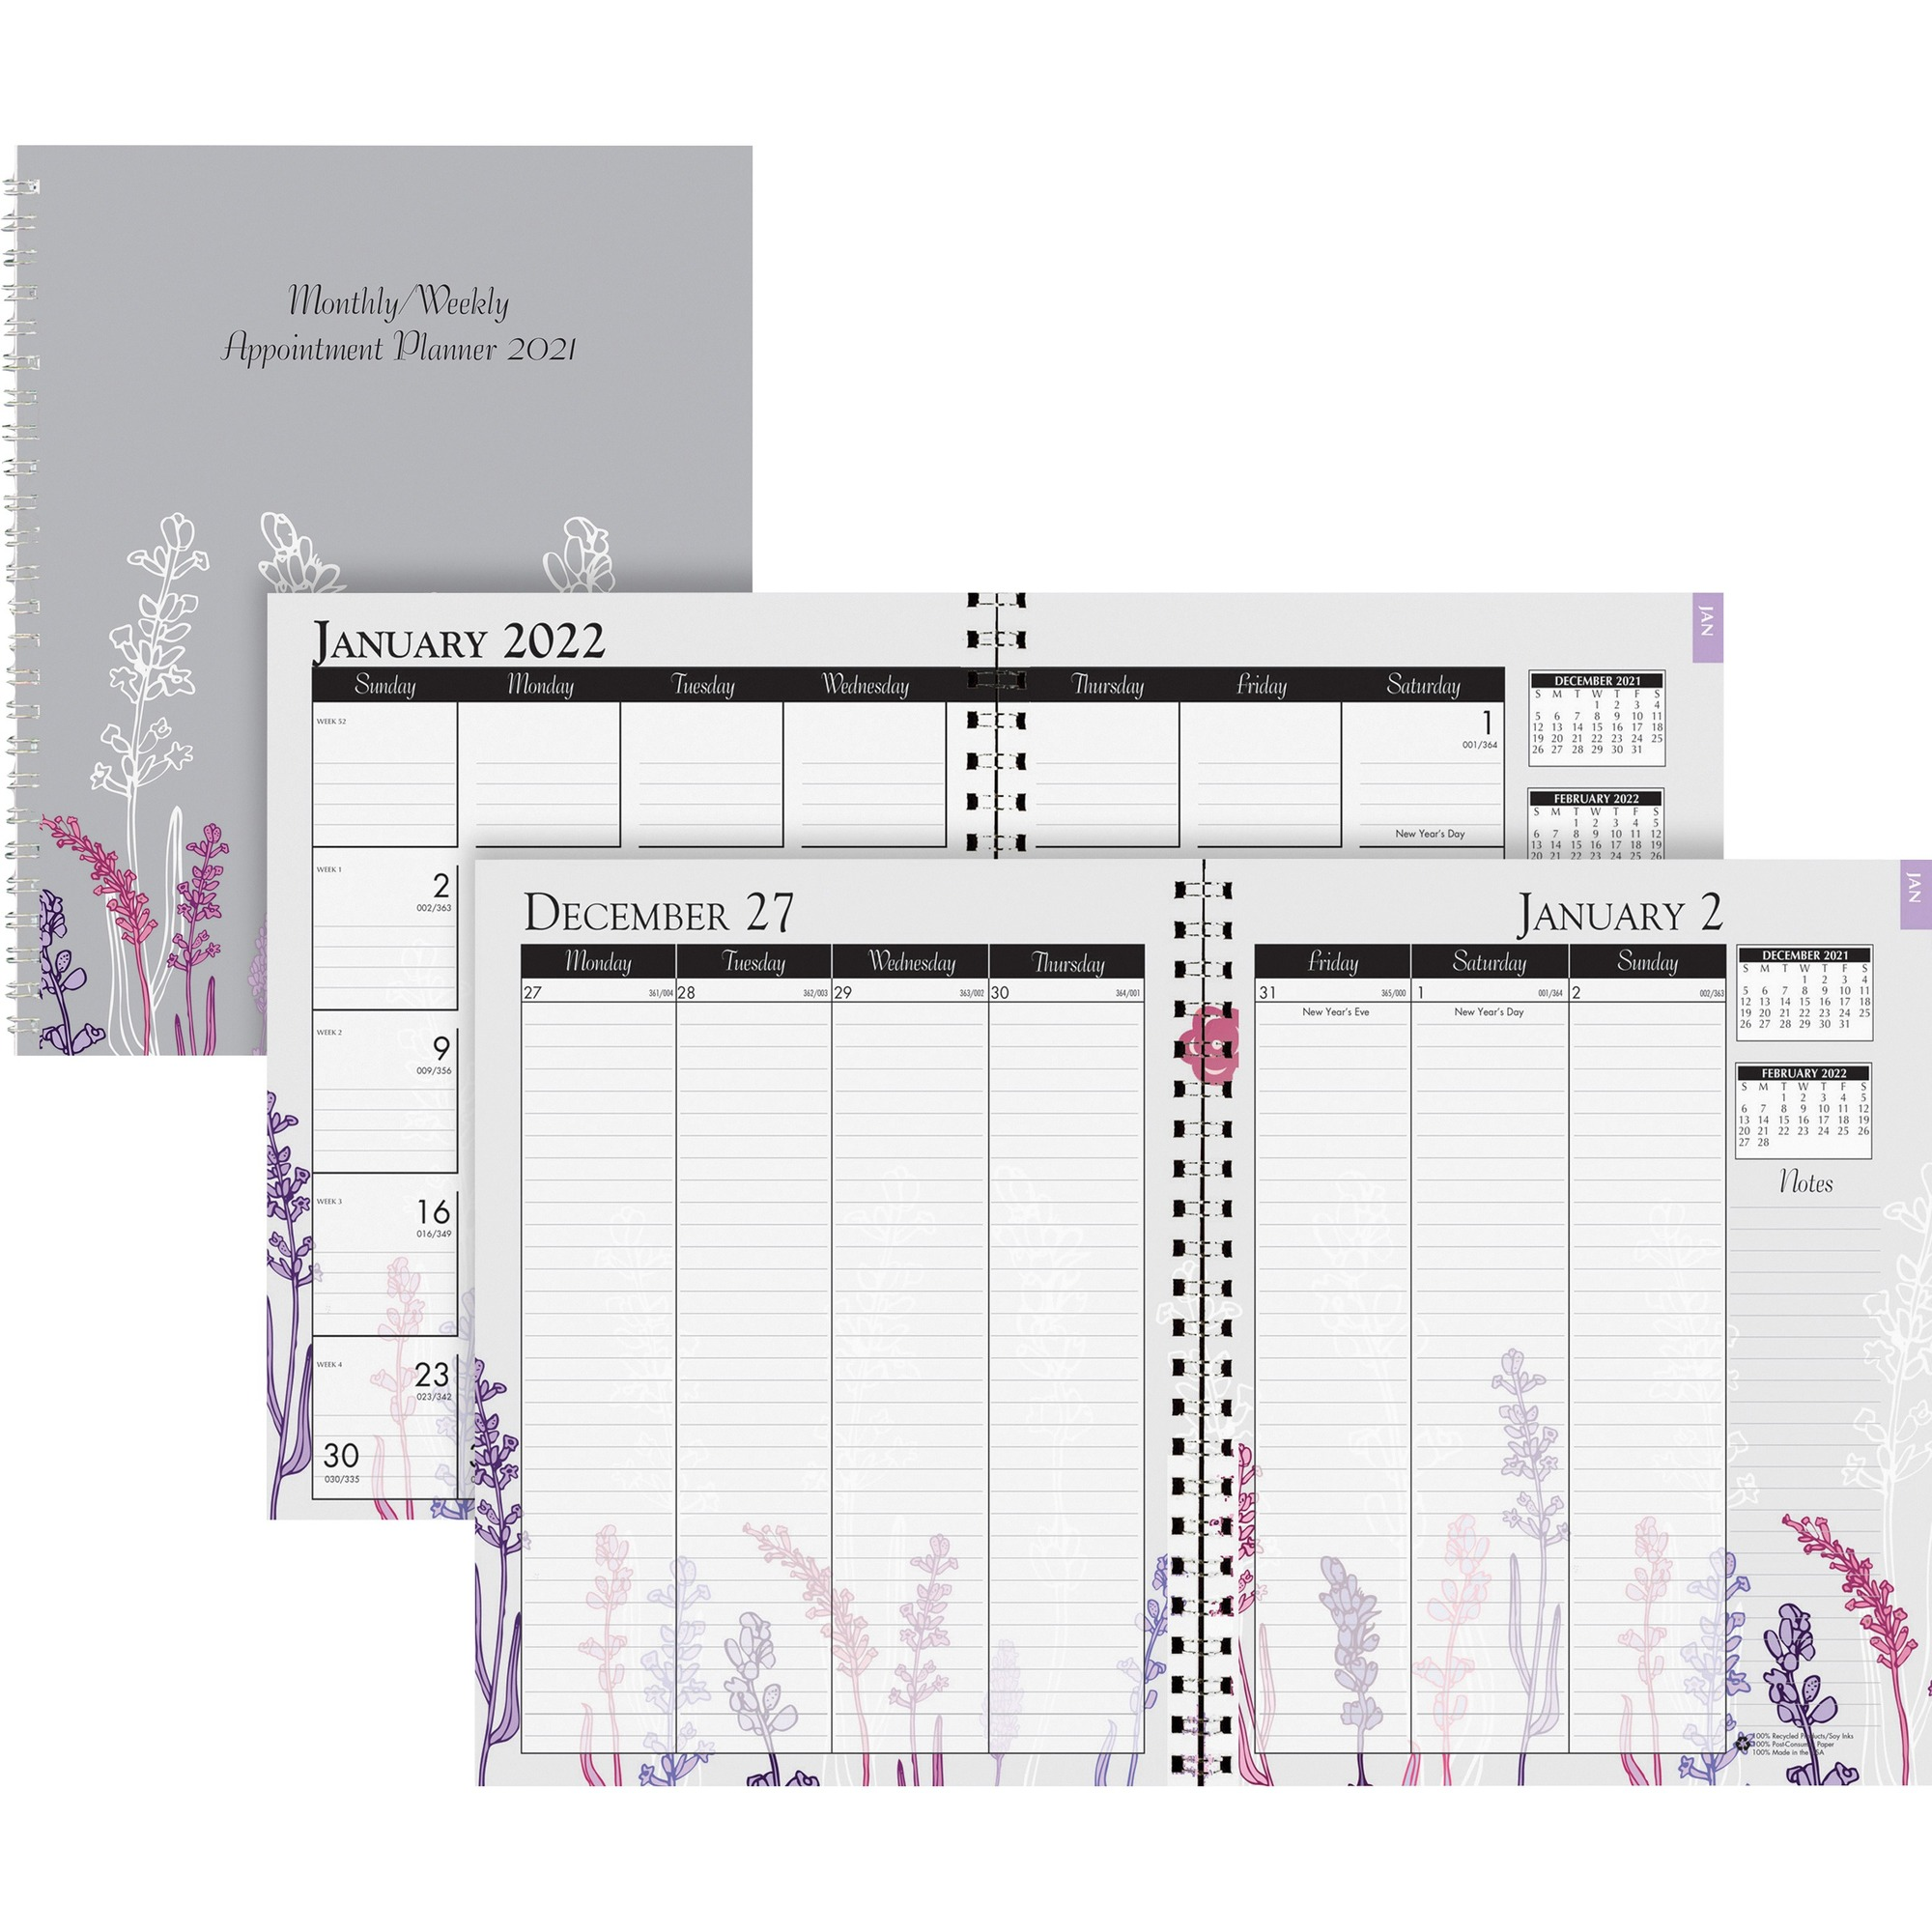 House of Doolittle Wild Flower Weekly/Monthly Planner - Julian Dates - Monthly, Weekly - 1 Year - January till December - 1 Week, 1 Month Double Page Layout - Spiral Bound - Multi, Silver - Paper - 9